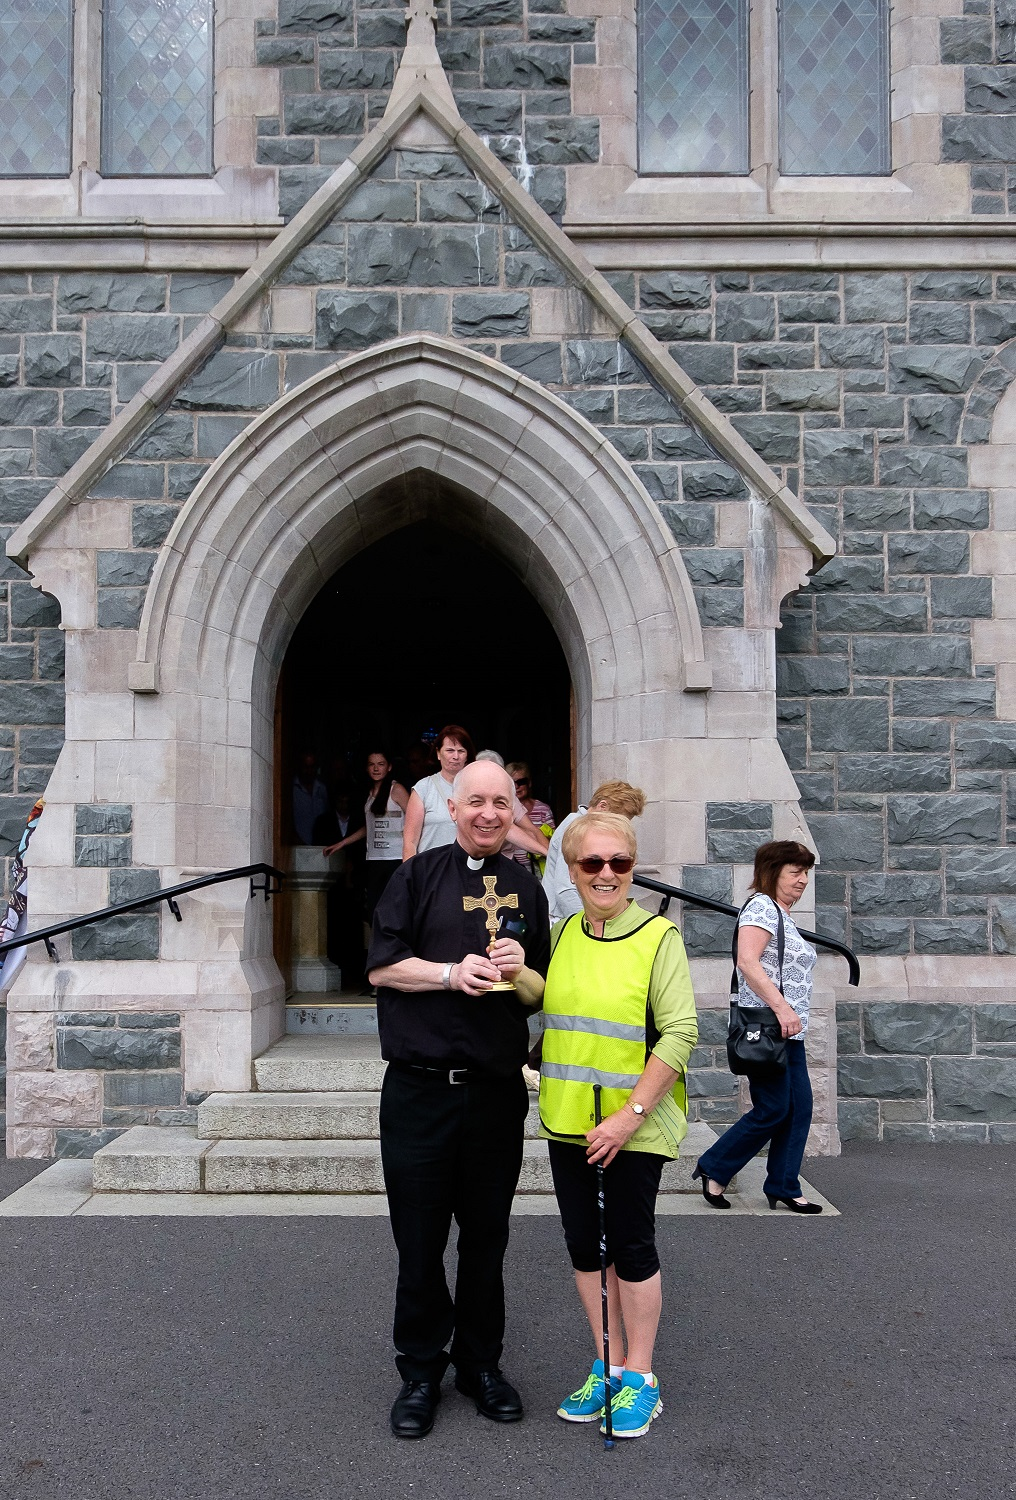 St Oliver Plunkett Camino  passes through BallymacnabBallymacnab Armagh Co.Armagh 9 July 2019CREDIT: LiamMcArdle.com